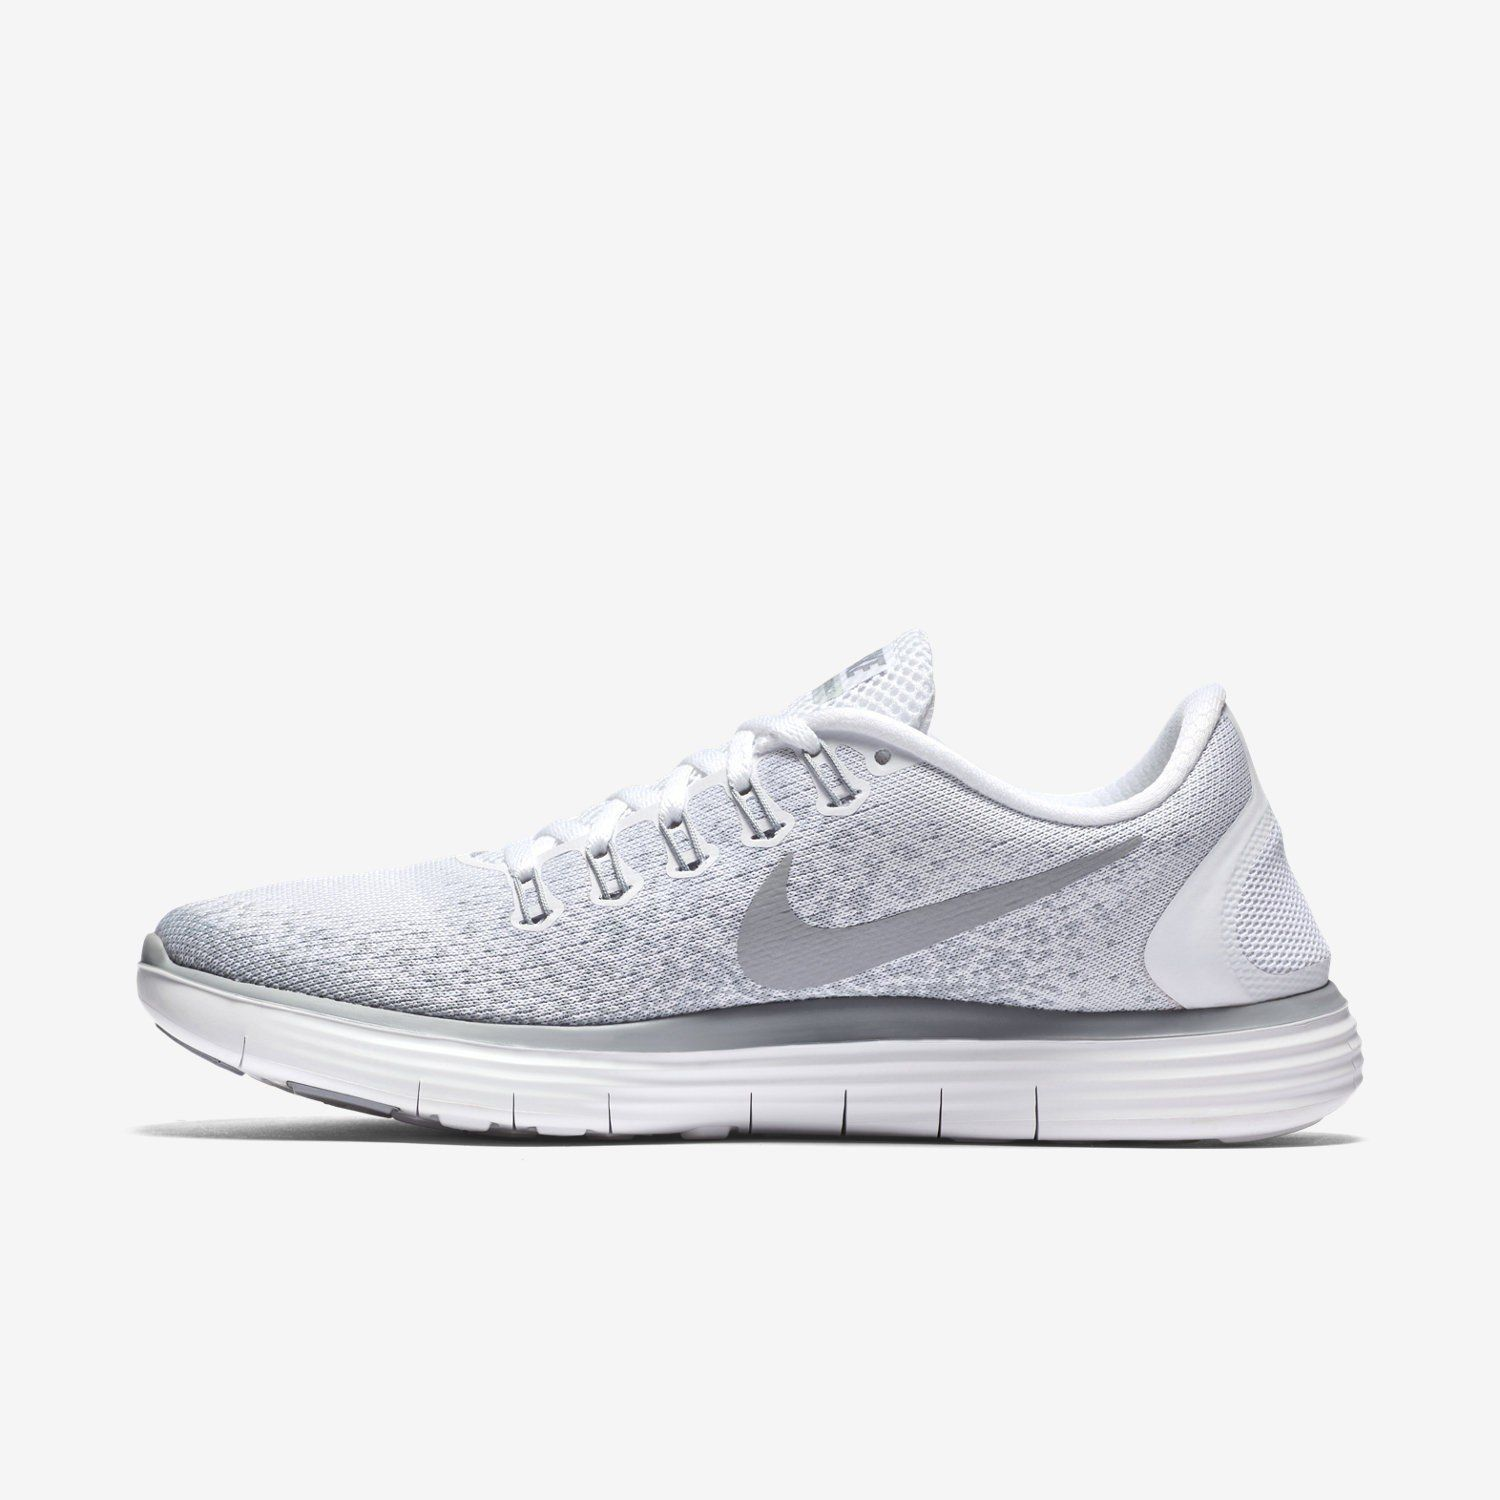 Nike Casual Breathable Mesh White Gray Silver Sneakers Women